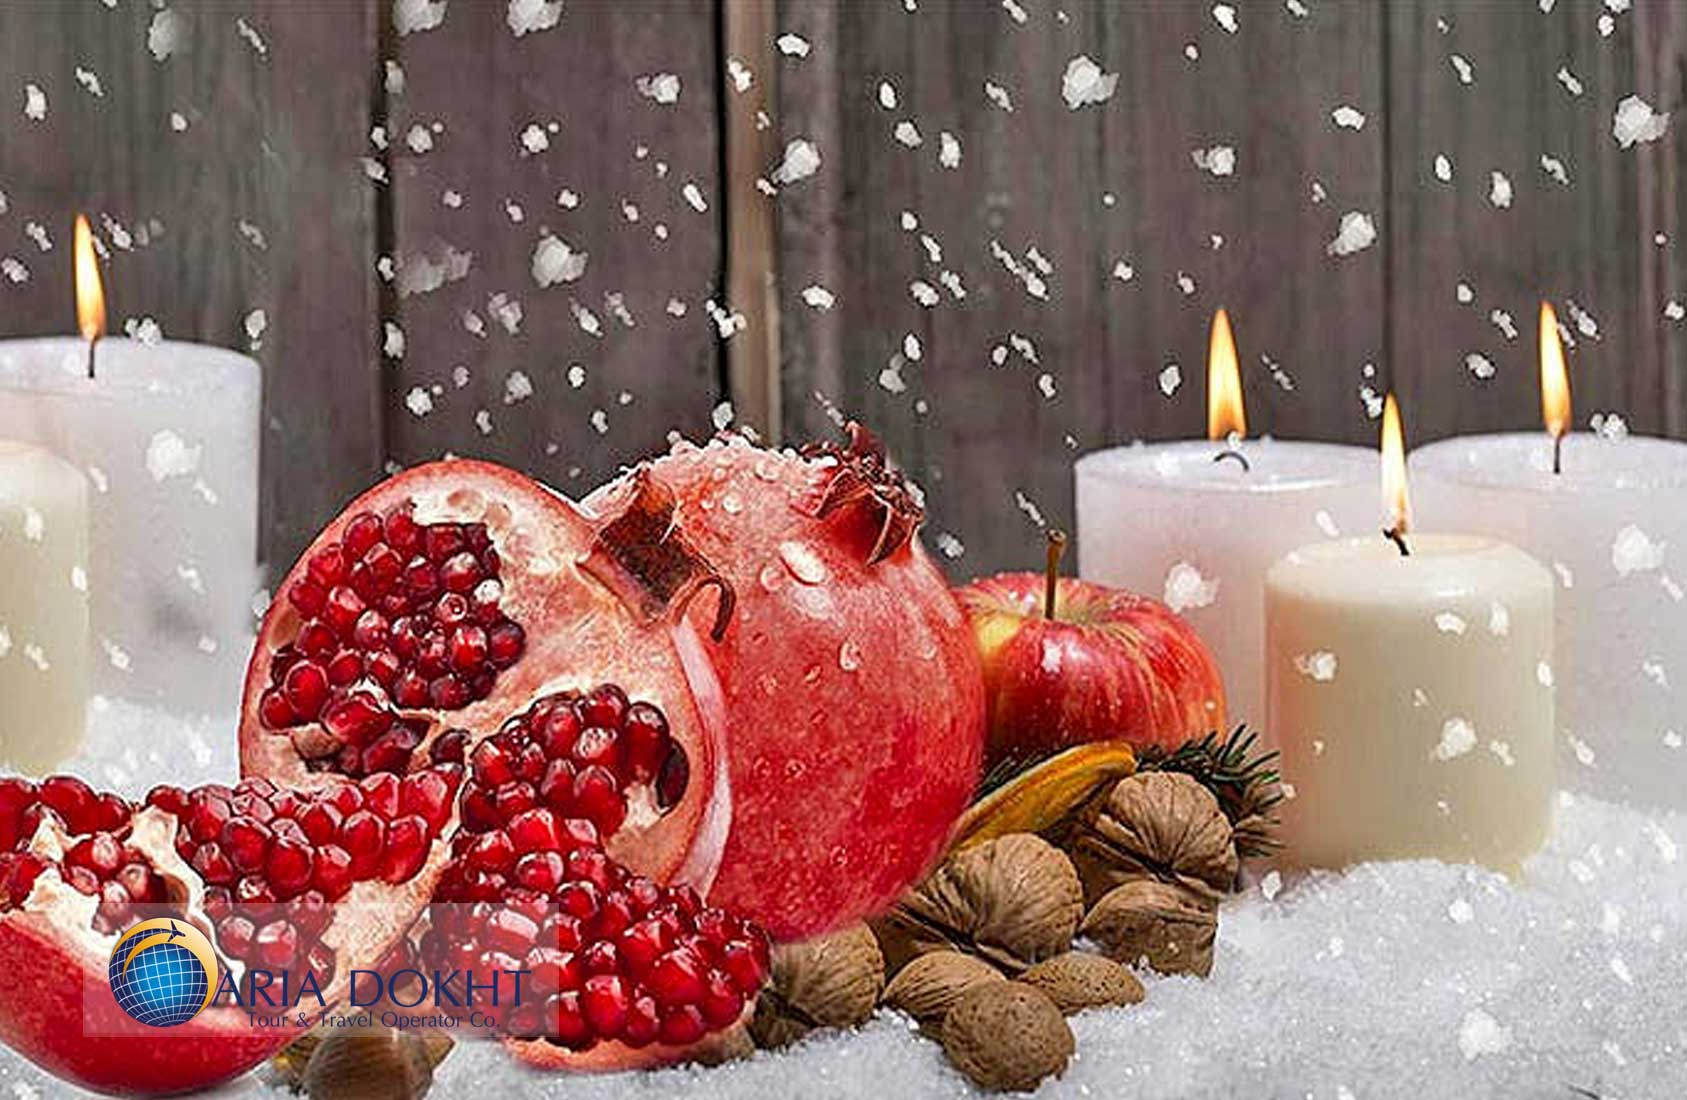 Yalda night, Shabe Cheleh, Yalda